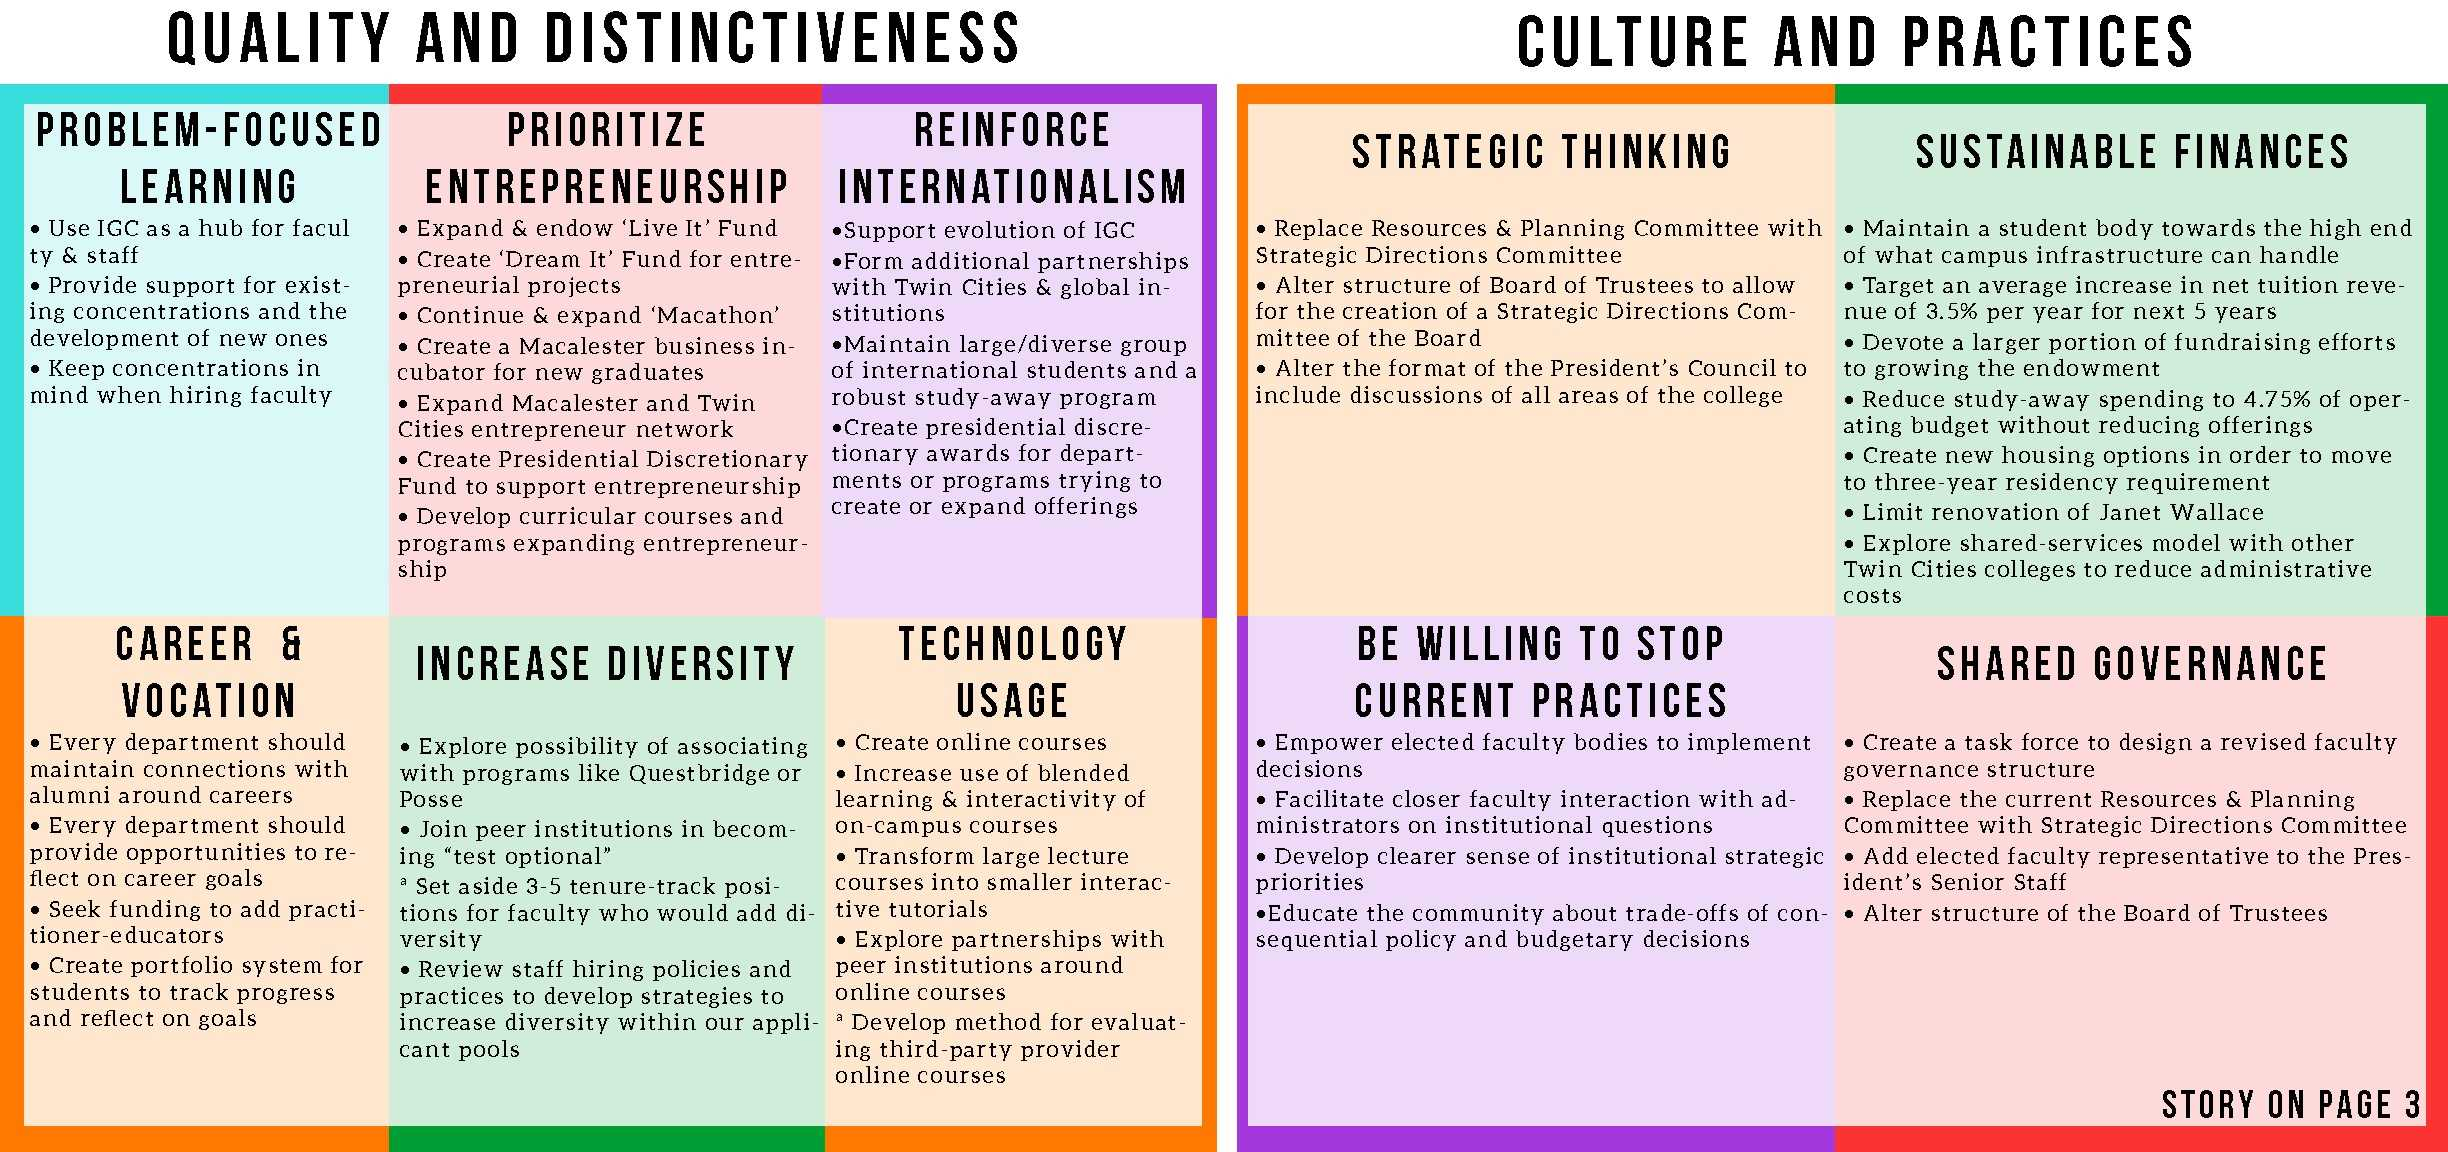 Strategic Plan released, focus includes diversity and entrepreneurship